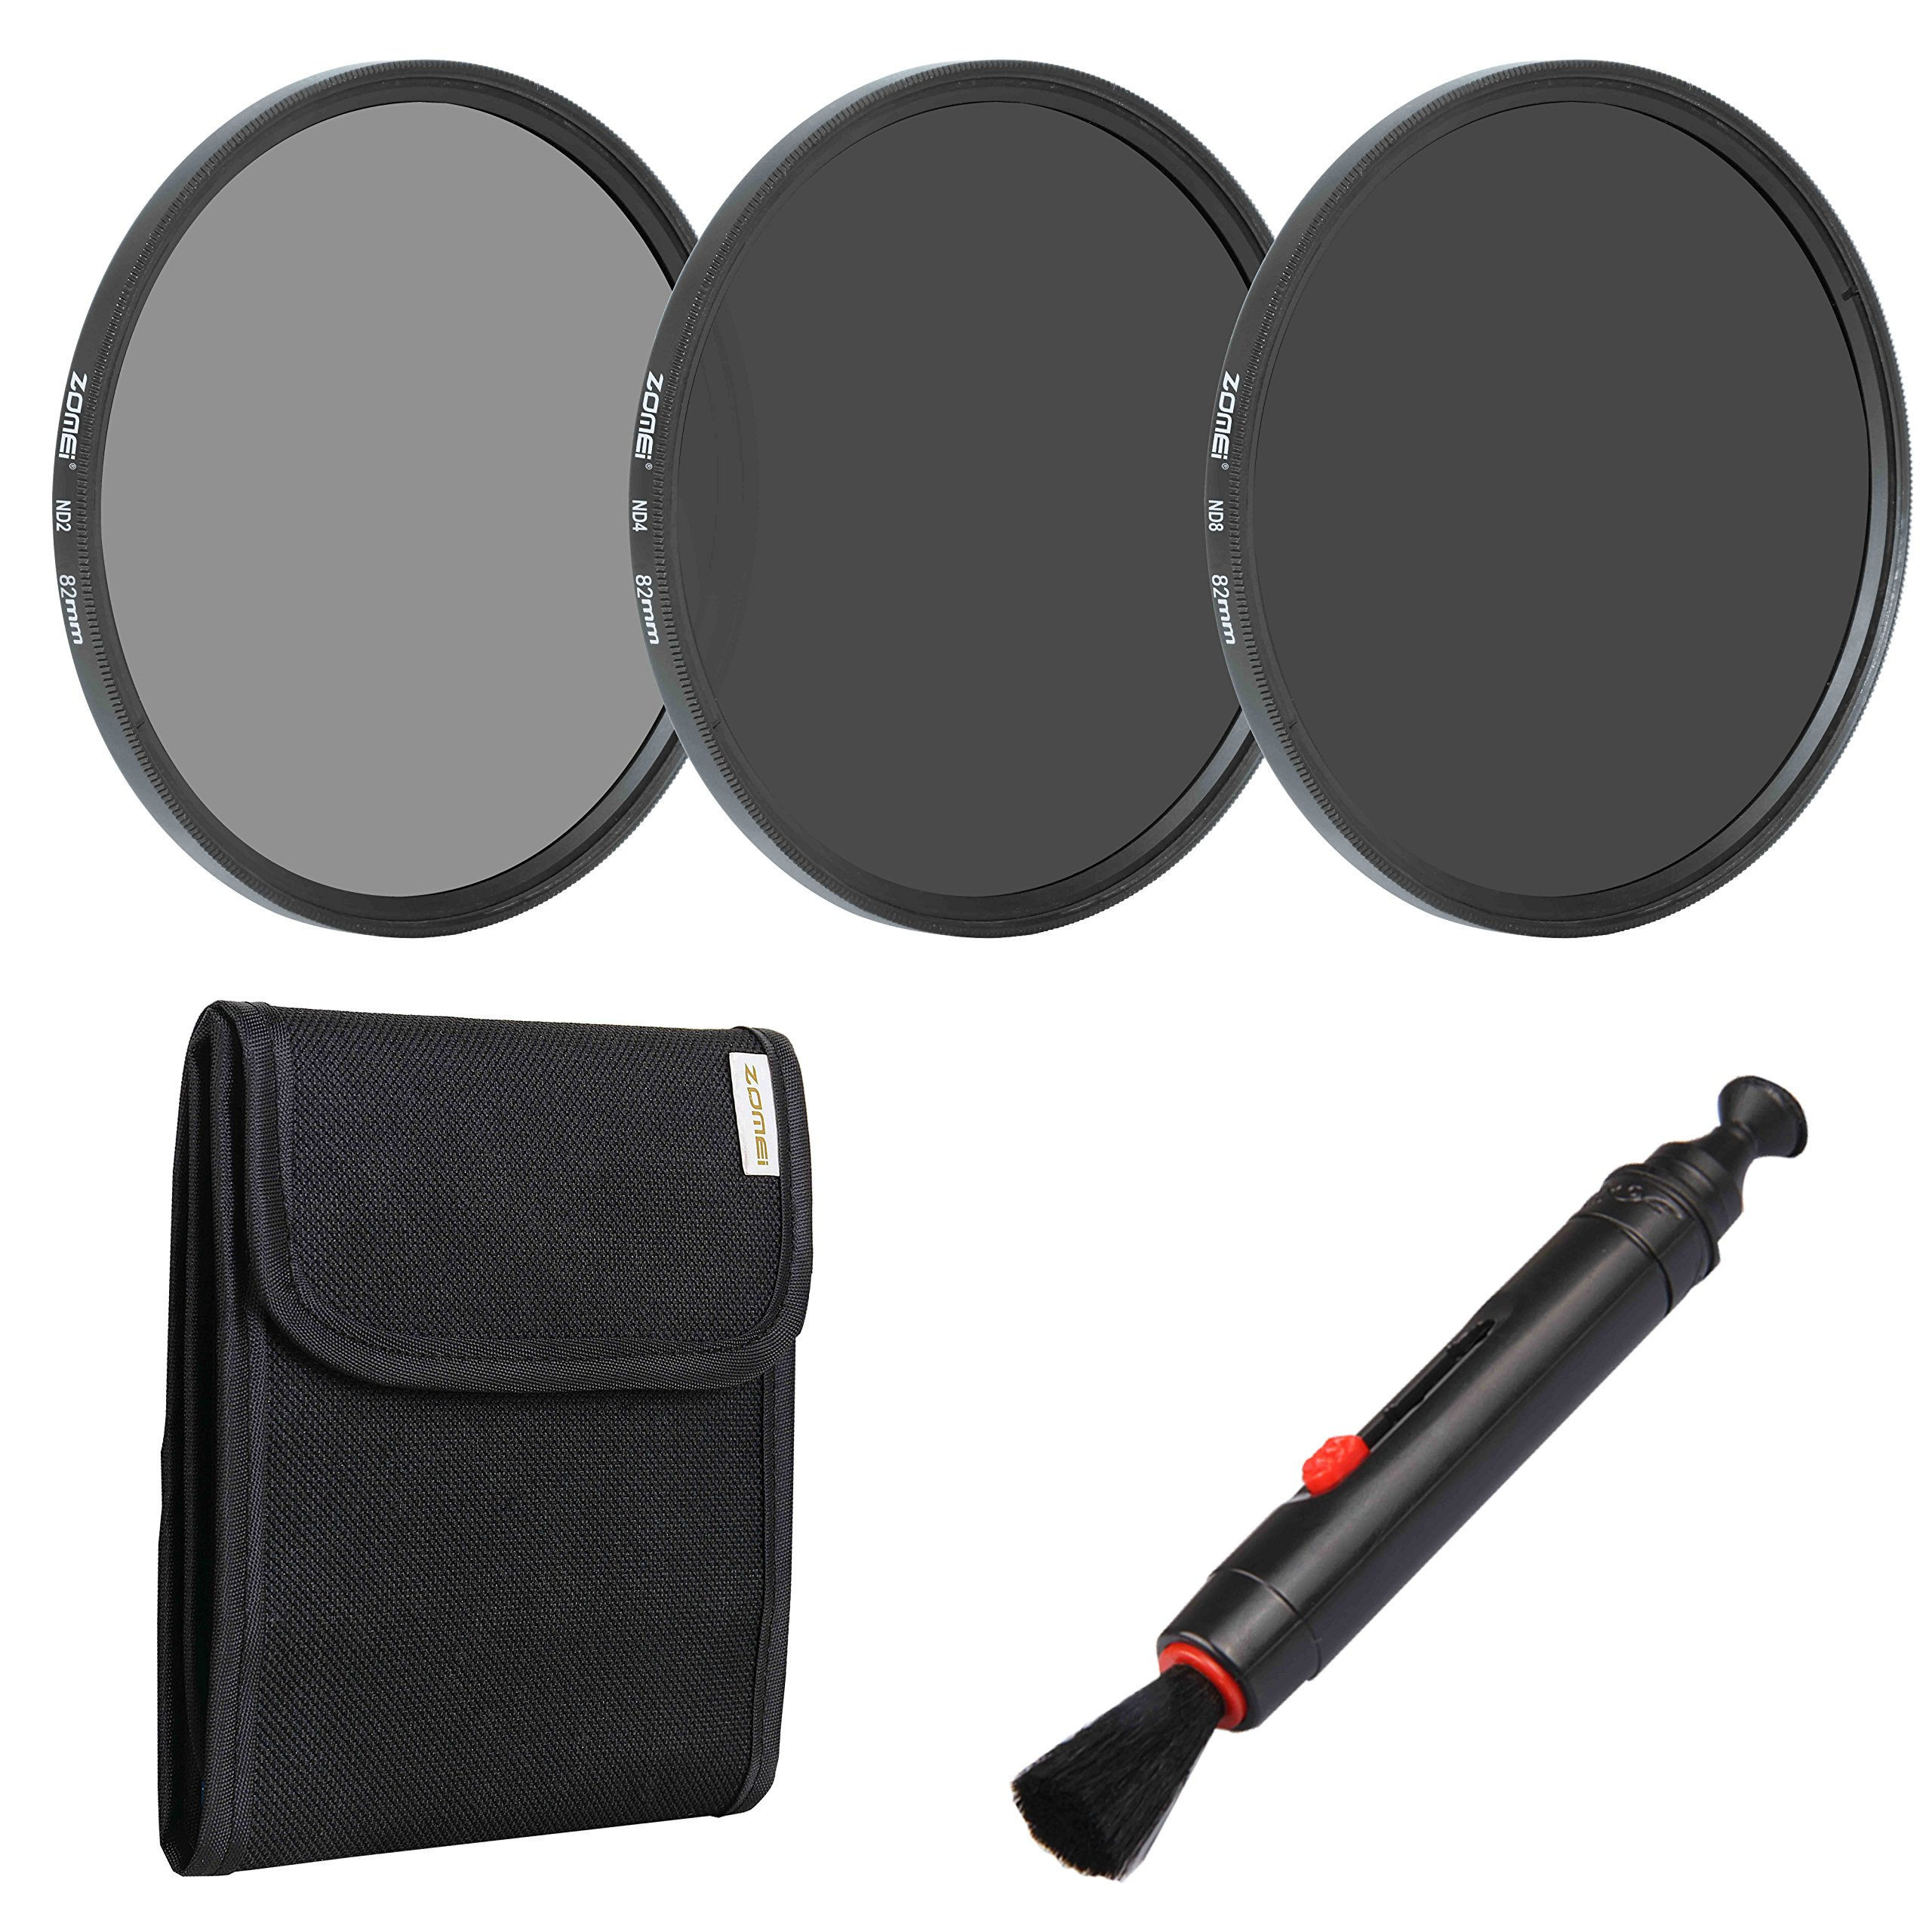 ZoMei 82mm Camera Lens Neutral Density Filter Set Include ND2 ND4 ND8 + Lens Pen + Filter Pouch by ZOMEi